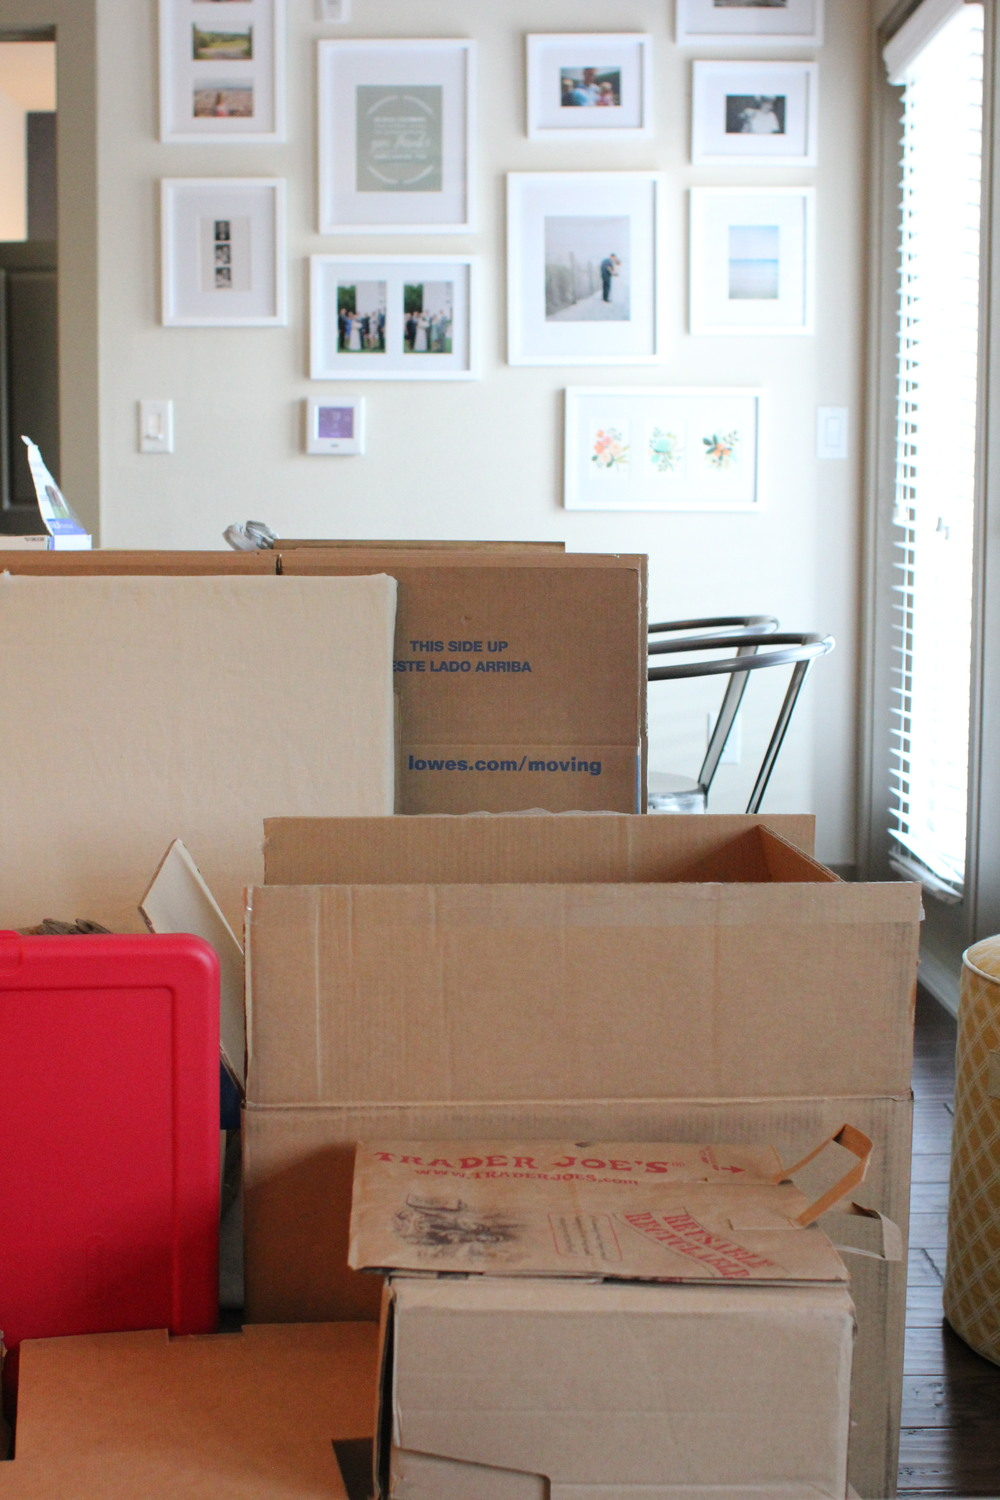 7 Packing Tips for a Smooth Move - that's pretty ace